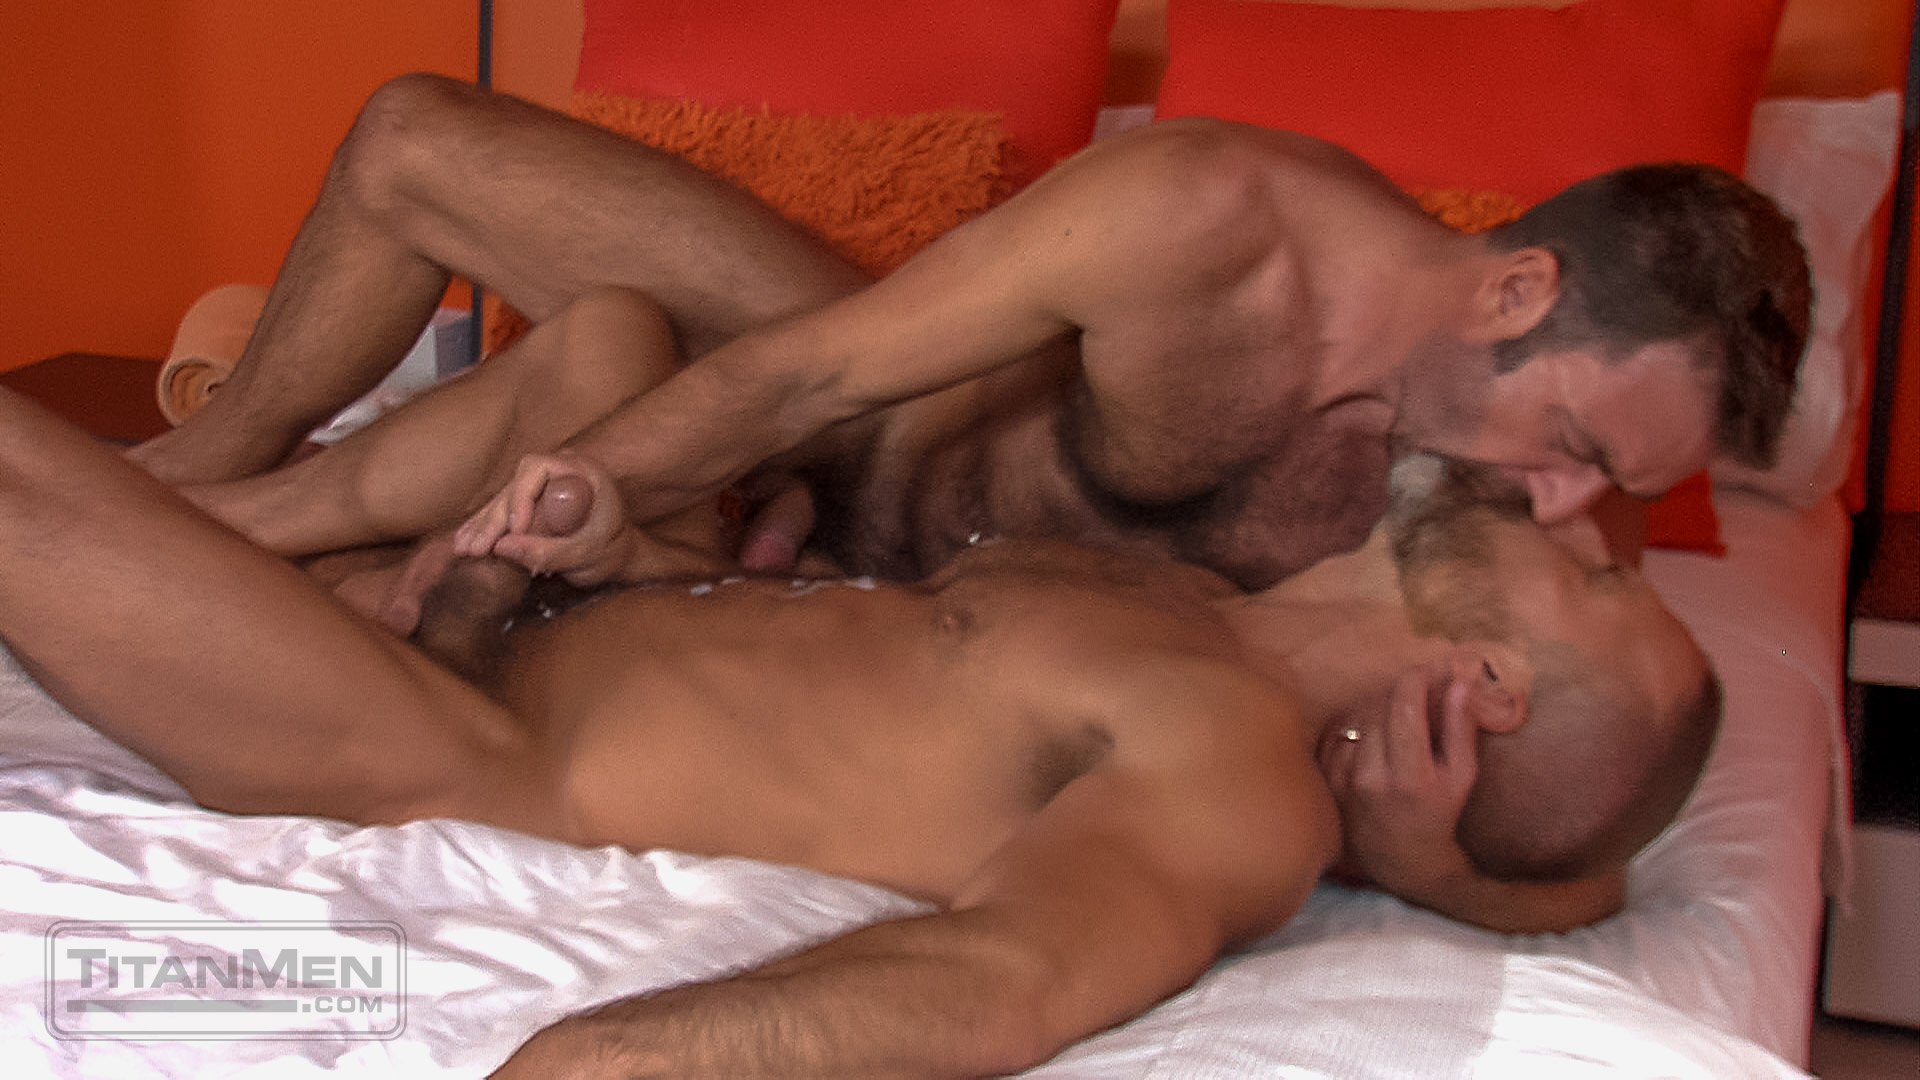 Throats my cock takes it deep in her ass i cum on her face